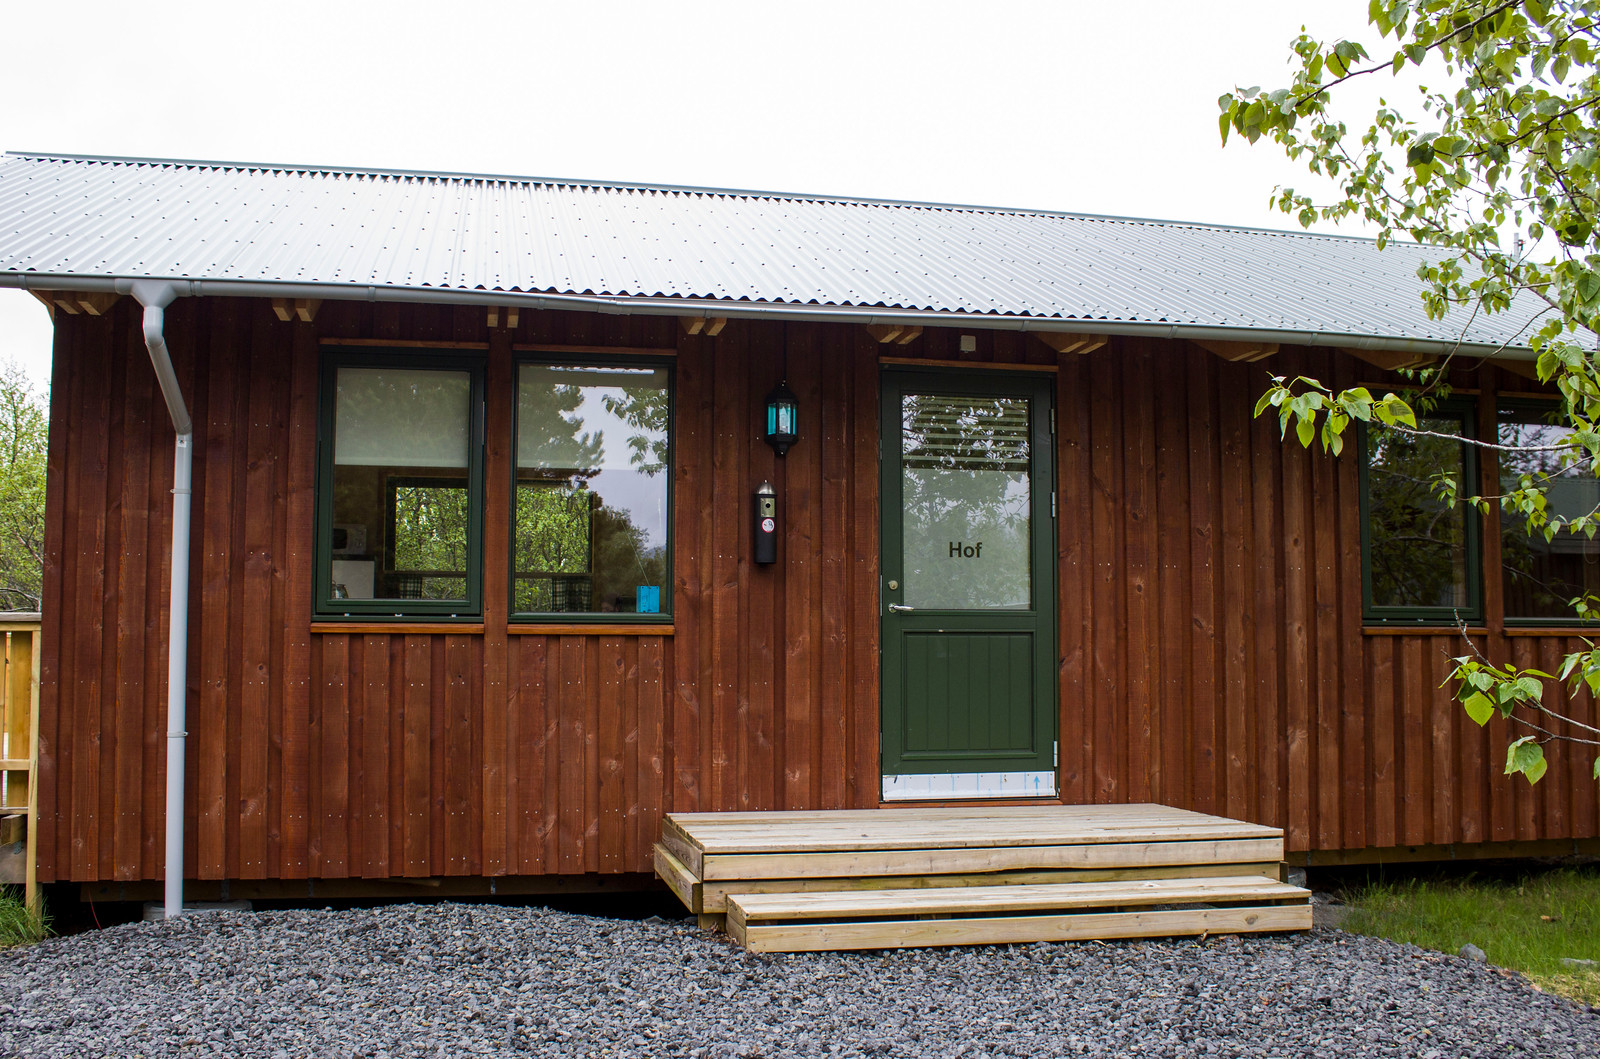 "Gesthus Selfoss - Our cabin ""Hof"" - Best hotels near the Golden Circle"